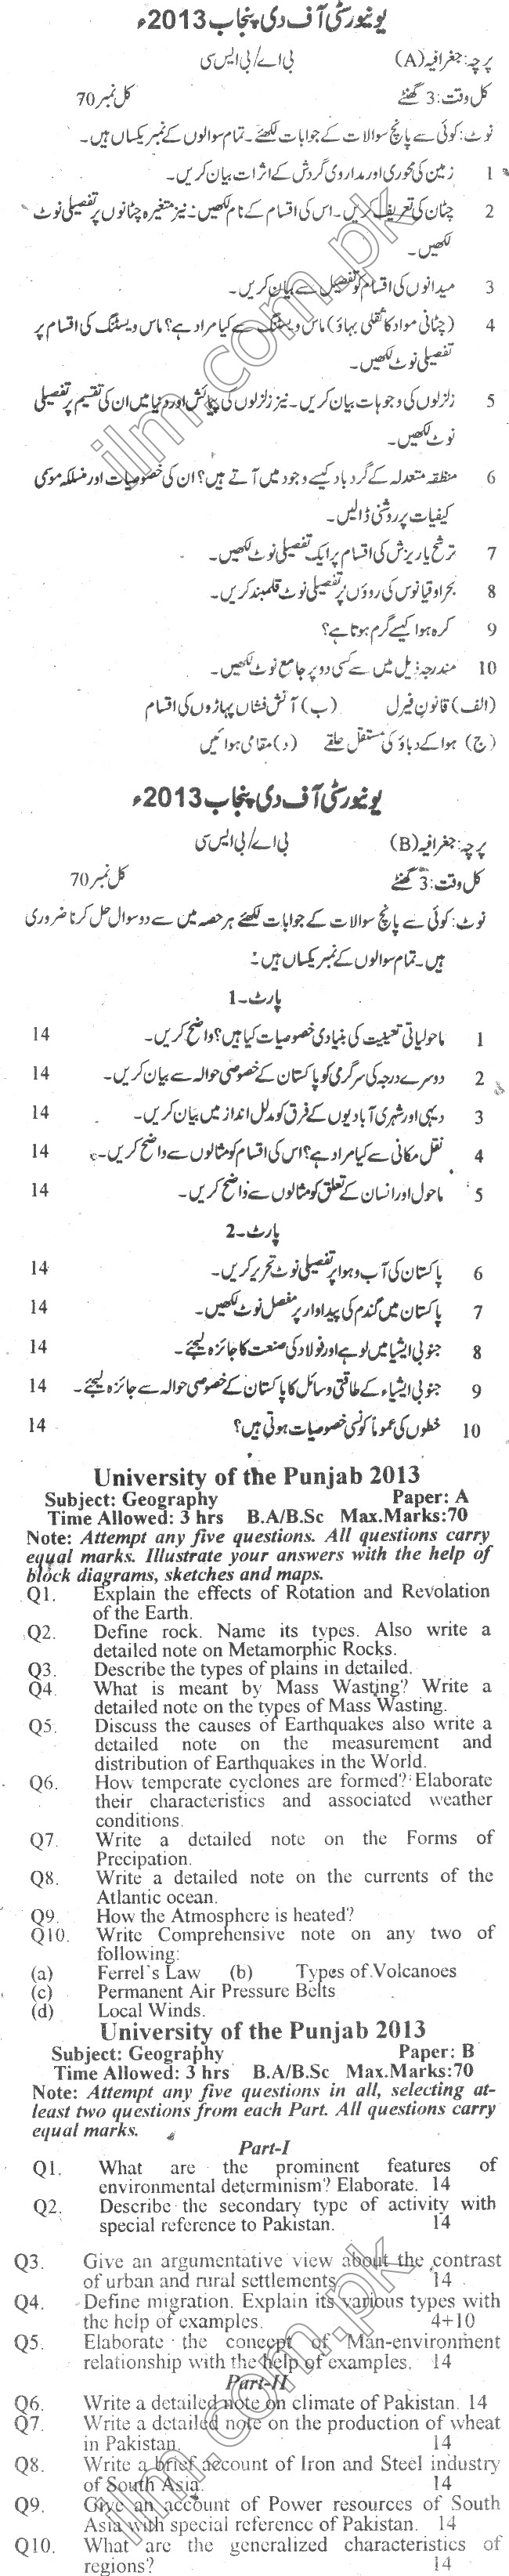 punjab university guess papers Home » education » guess papers » ba / bsc english a, b guess paper 2018 punjab university important questions if you are looking for the ba english guess paper 2018 then that means you have register yourself to appear in the punjab university annual examination and according to the announce date sheet by the officials of the punjab .